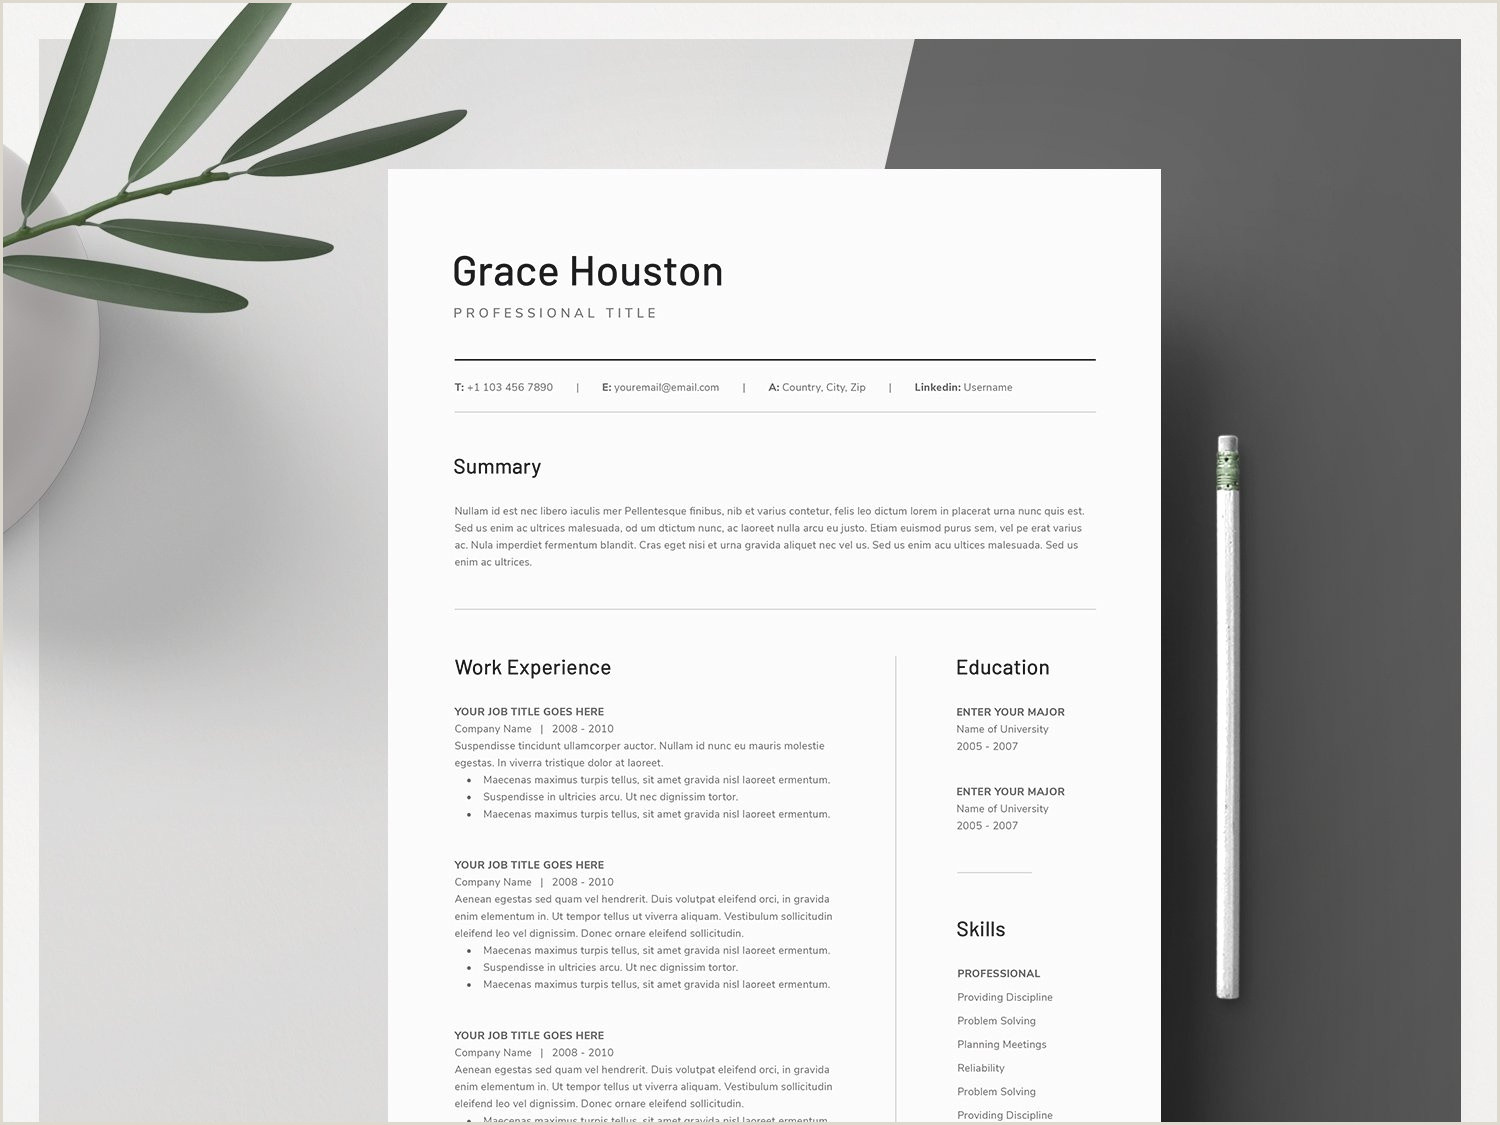 Word Resume & Cover Letter Template by Resume Templates on